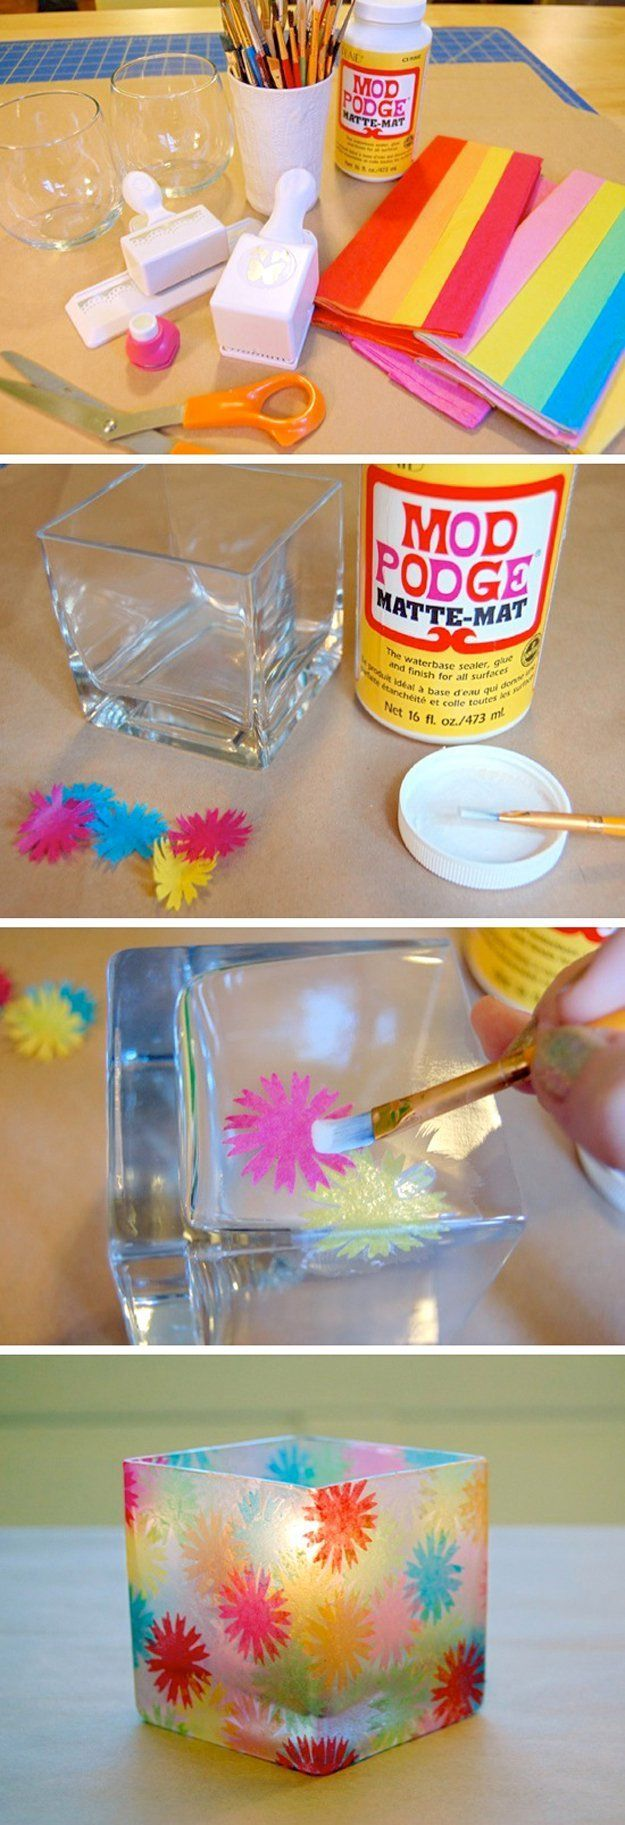 18 DIY Room Decor Ideas for Crafters (Who Are Also Renters) DIYReady.com | Easy DIY Crafts, Fun Projects, & DIY Craft Ideas For Kids & Adults